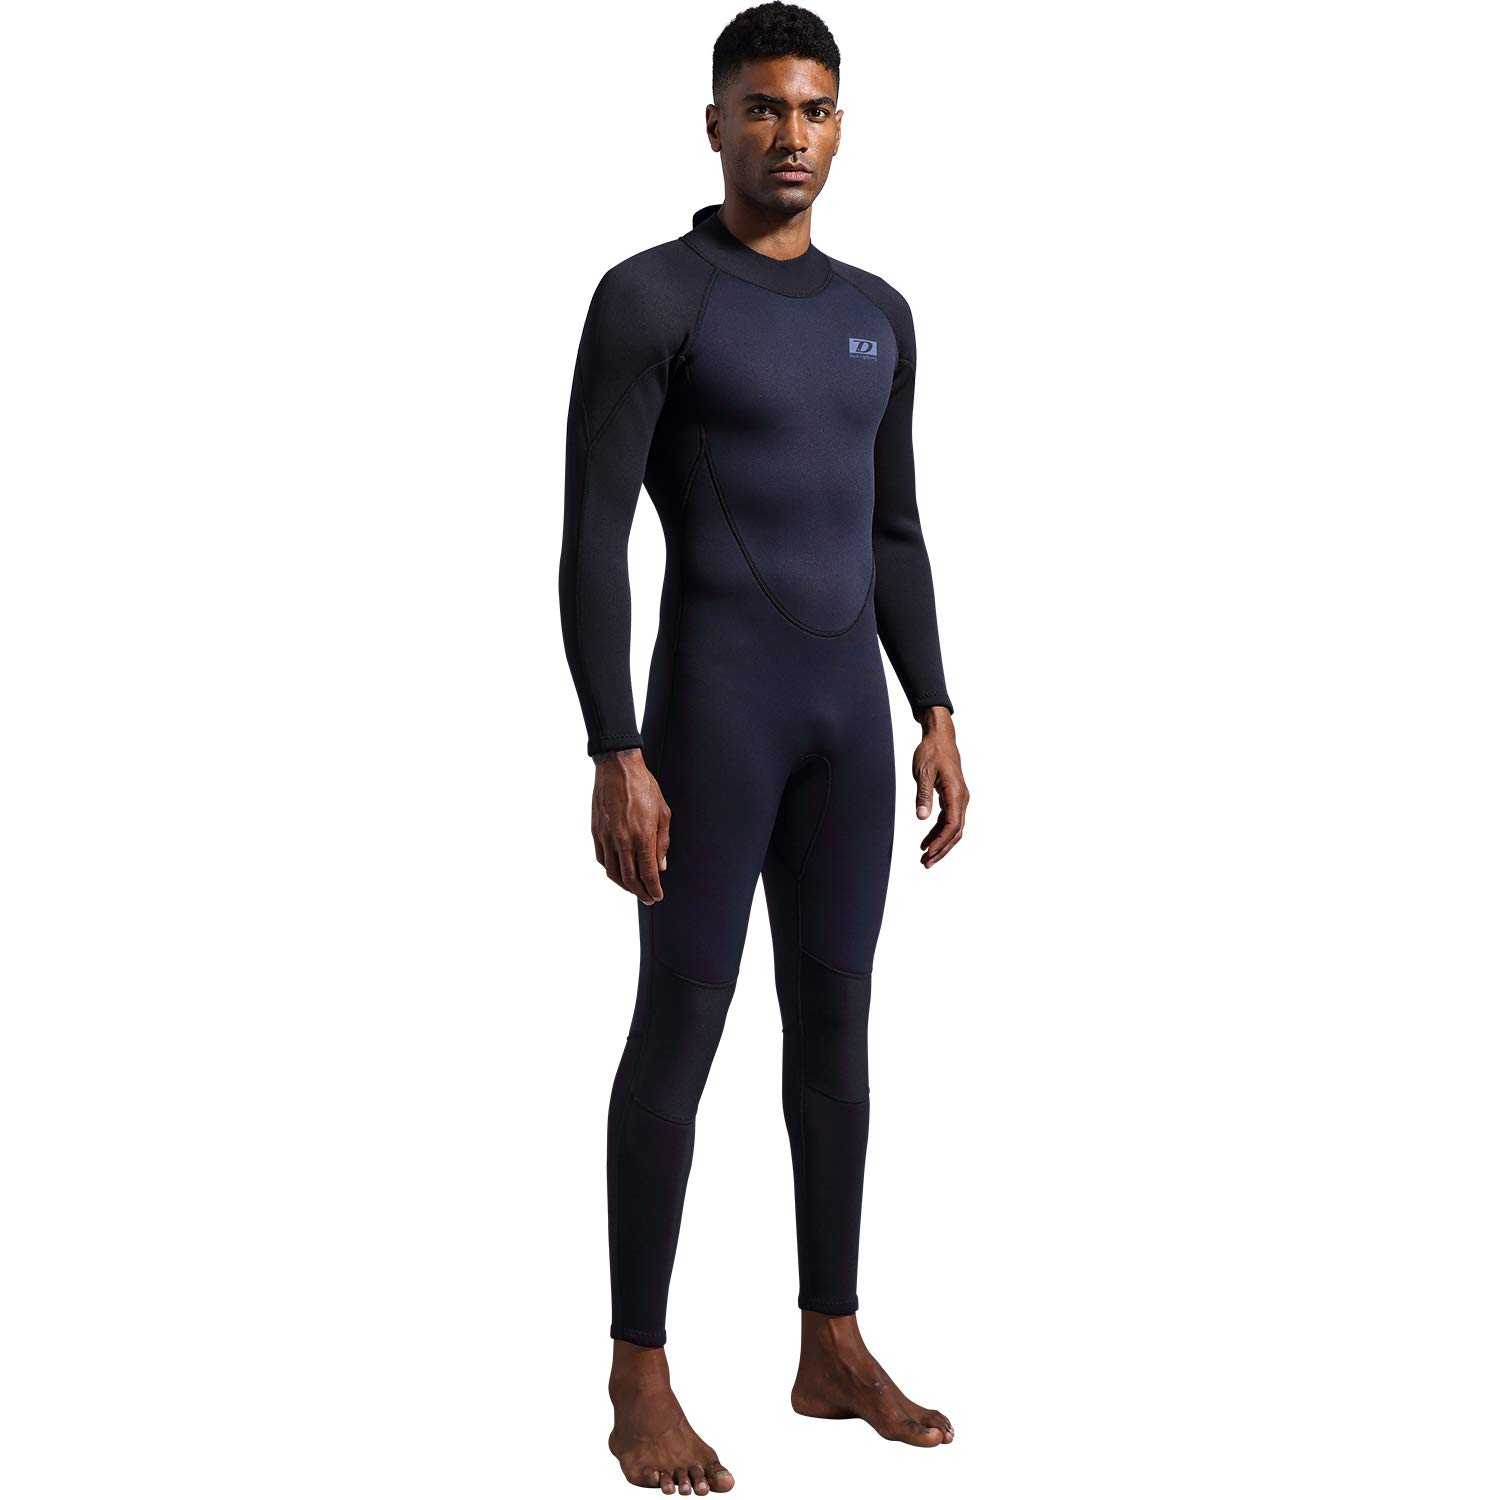 dark lightning Premium CR Neoprene Wetsuit,Mens Full Body Suit for Scuba Diving/Surfing/Snorkeling/Kayaking Thermal Wetsuit in 3/3mm (Men's XXX-Large) by dark lightning